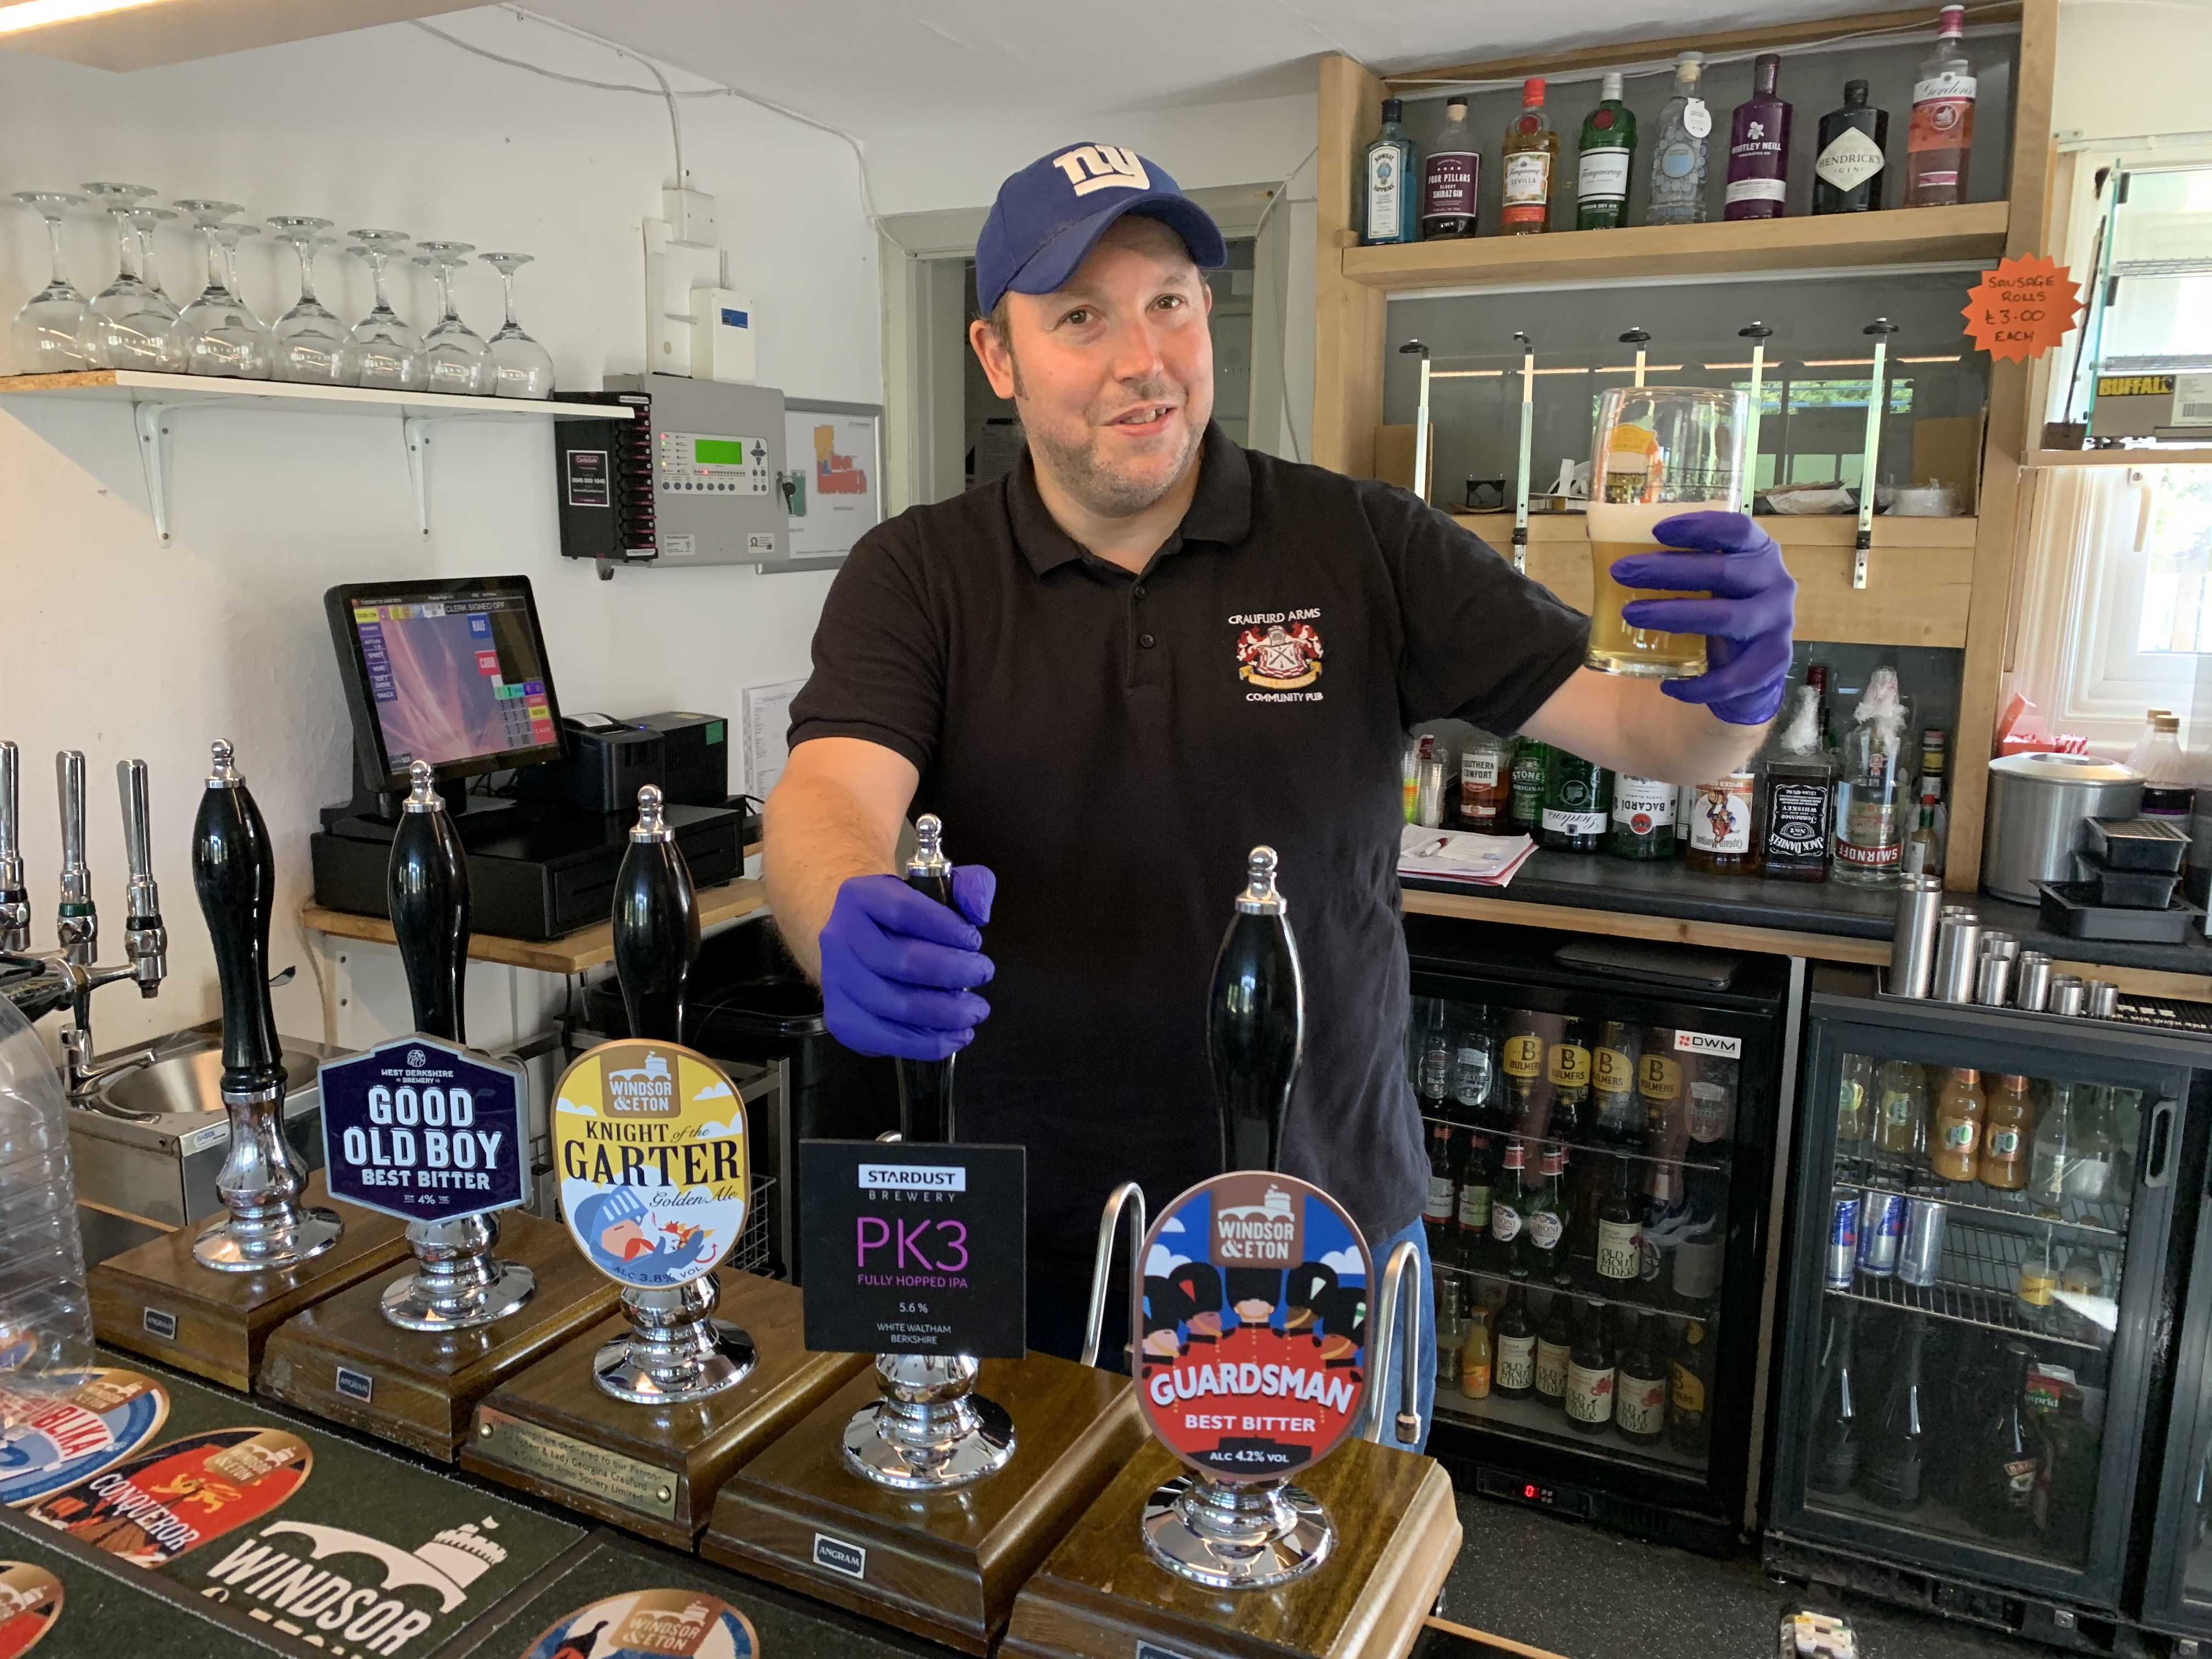 """Neil Piddington, general manager of the Craufurd Arms community-owned pub in Maidenhead, checks the beer after Prime Minister Boris Johnson said that pubs, restaurants and cinemas in England will be able to reopen from July 4, with """"one metre-plus"""" distancing measures in place as part of measures to ease the coronavirus lockdown."""